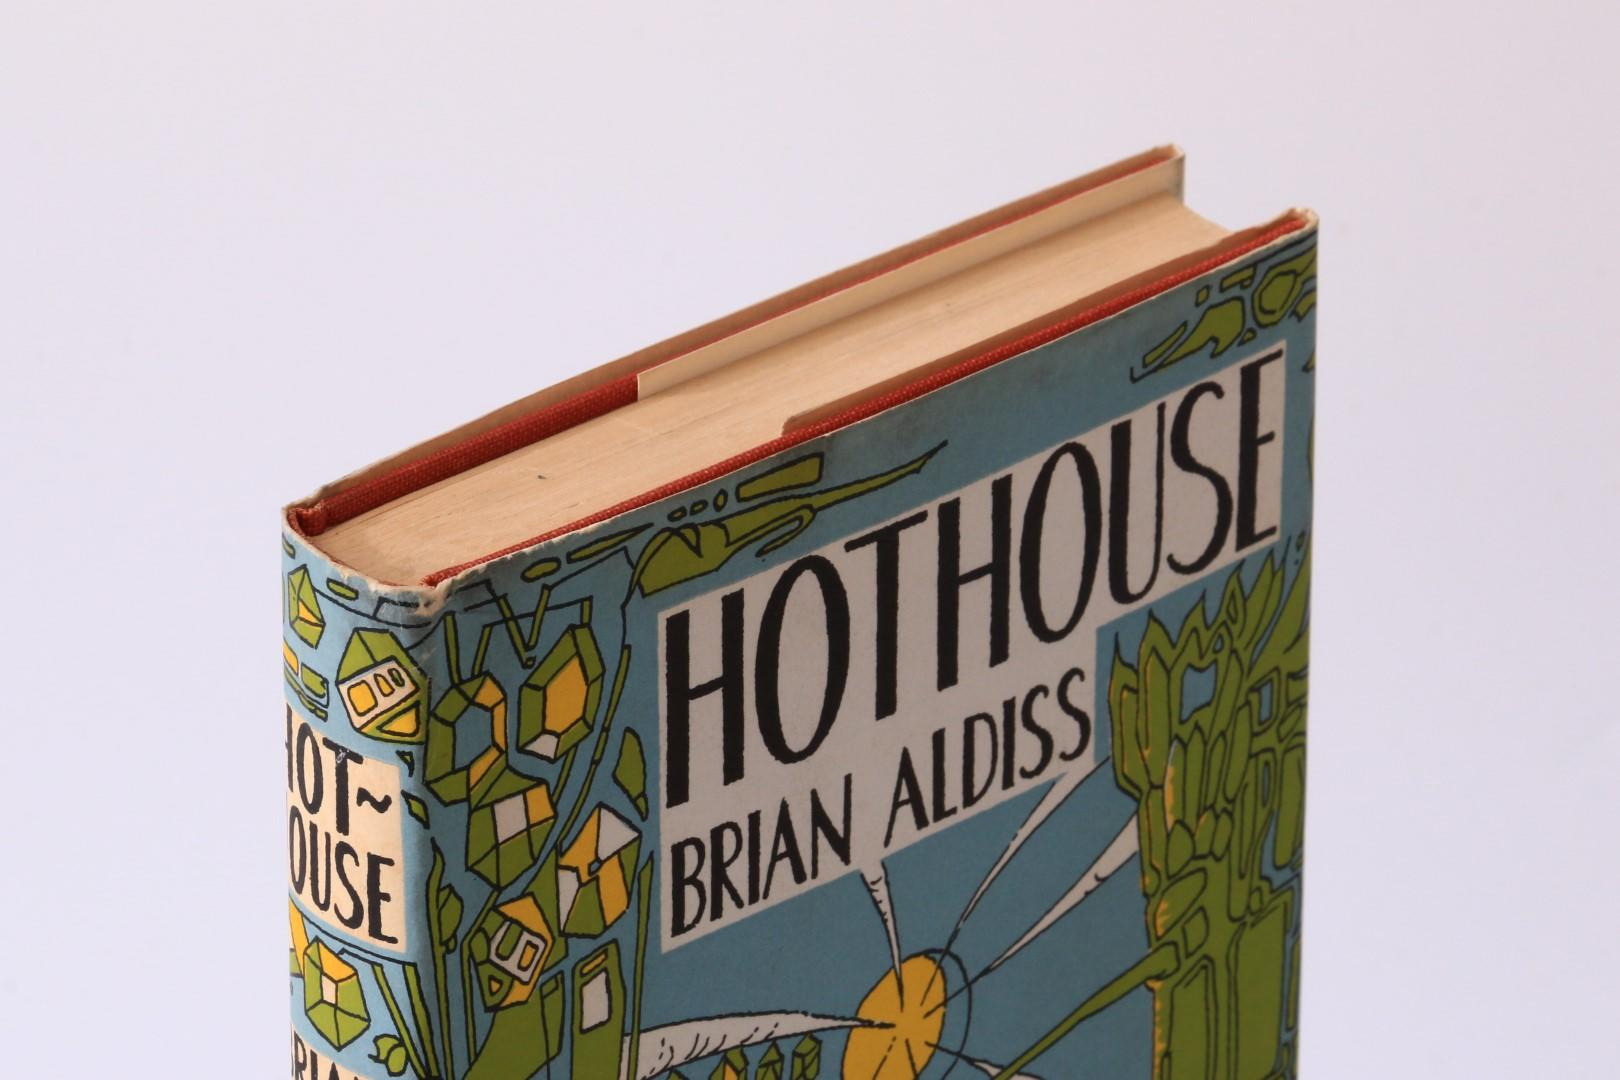 Brian Aldiss - Hothouse - Faber & Faber, 1962, First Edition.